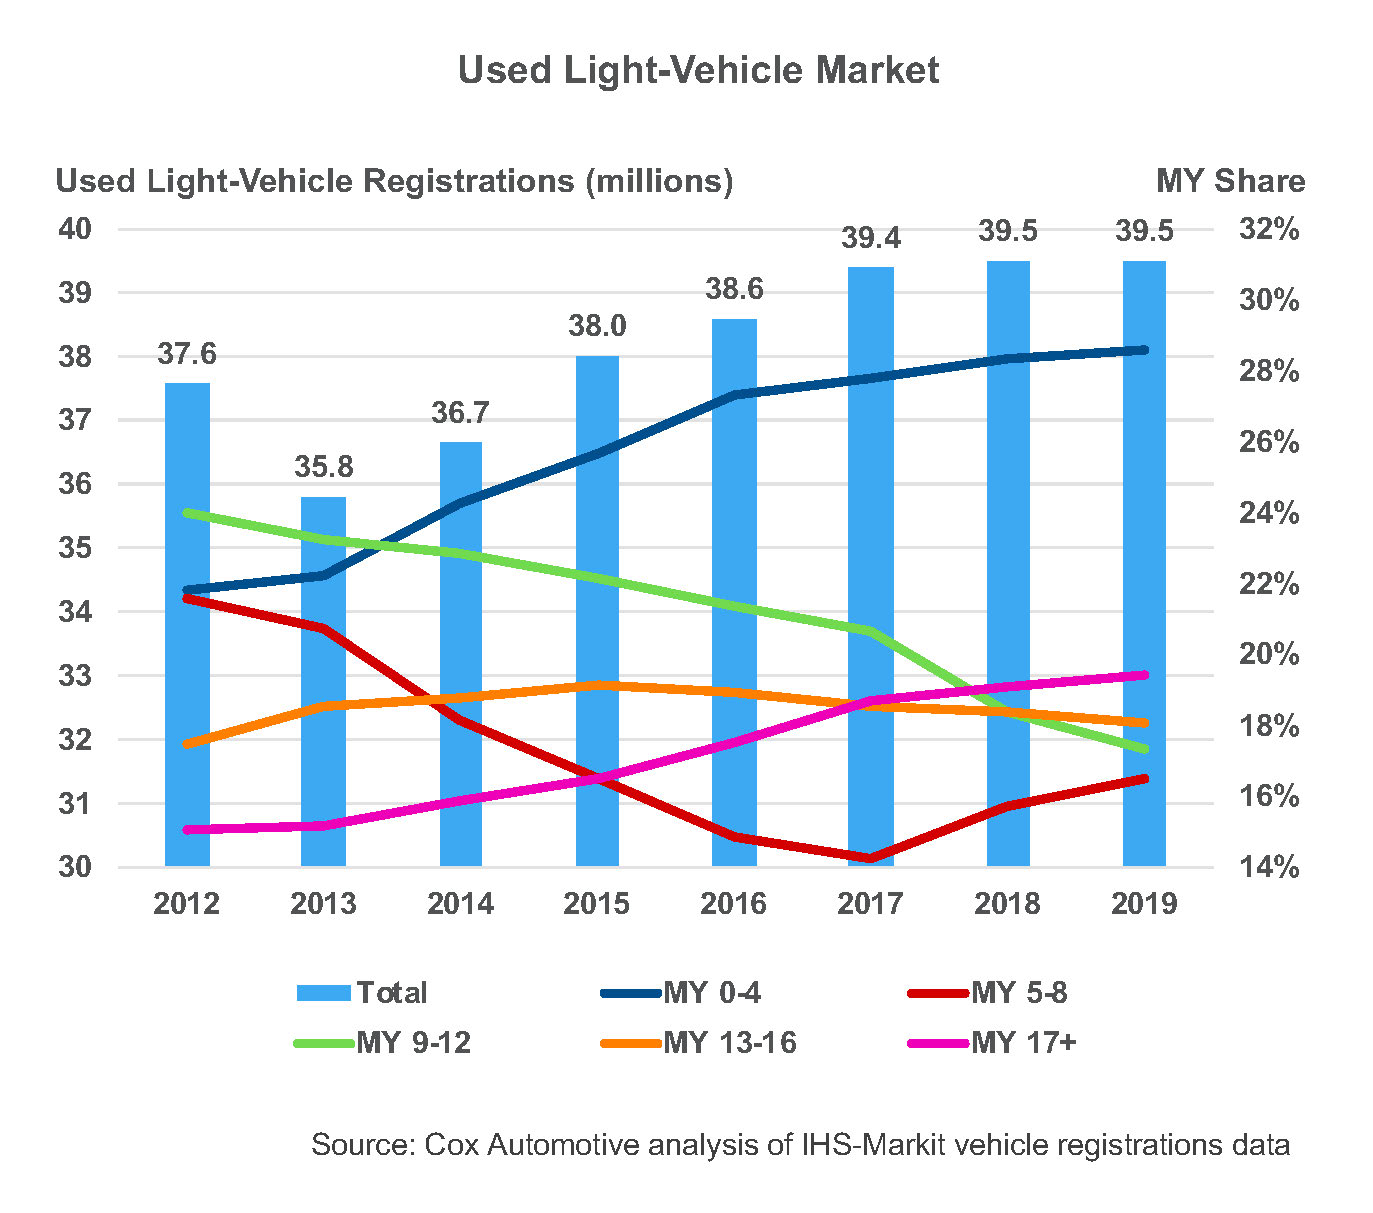 Used light vehicle market